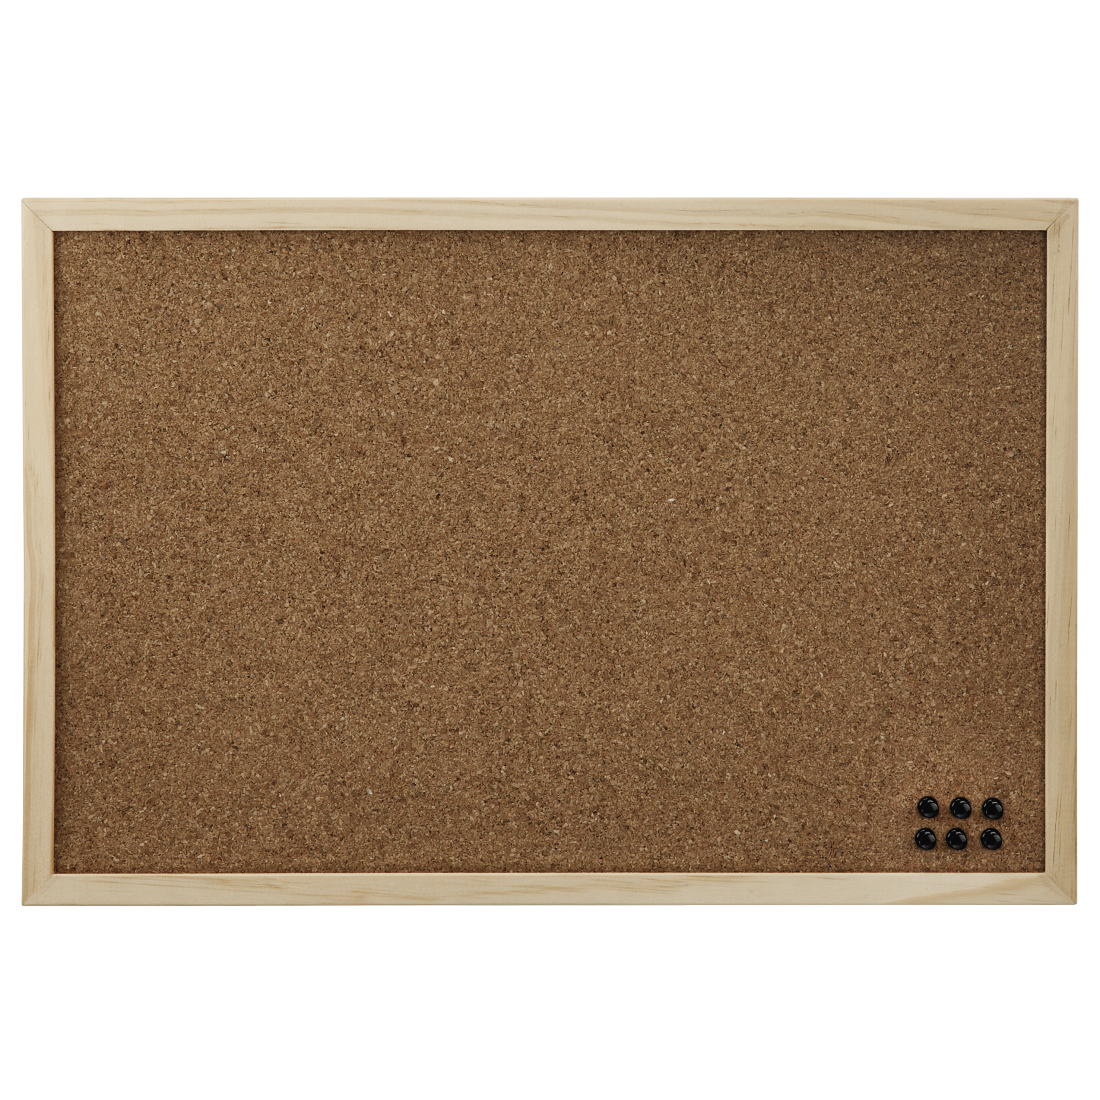 abx High-Res Image - Hama, Pin Board, 29.5 x 39.5 cm, wood, cork on both sides, nature